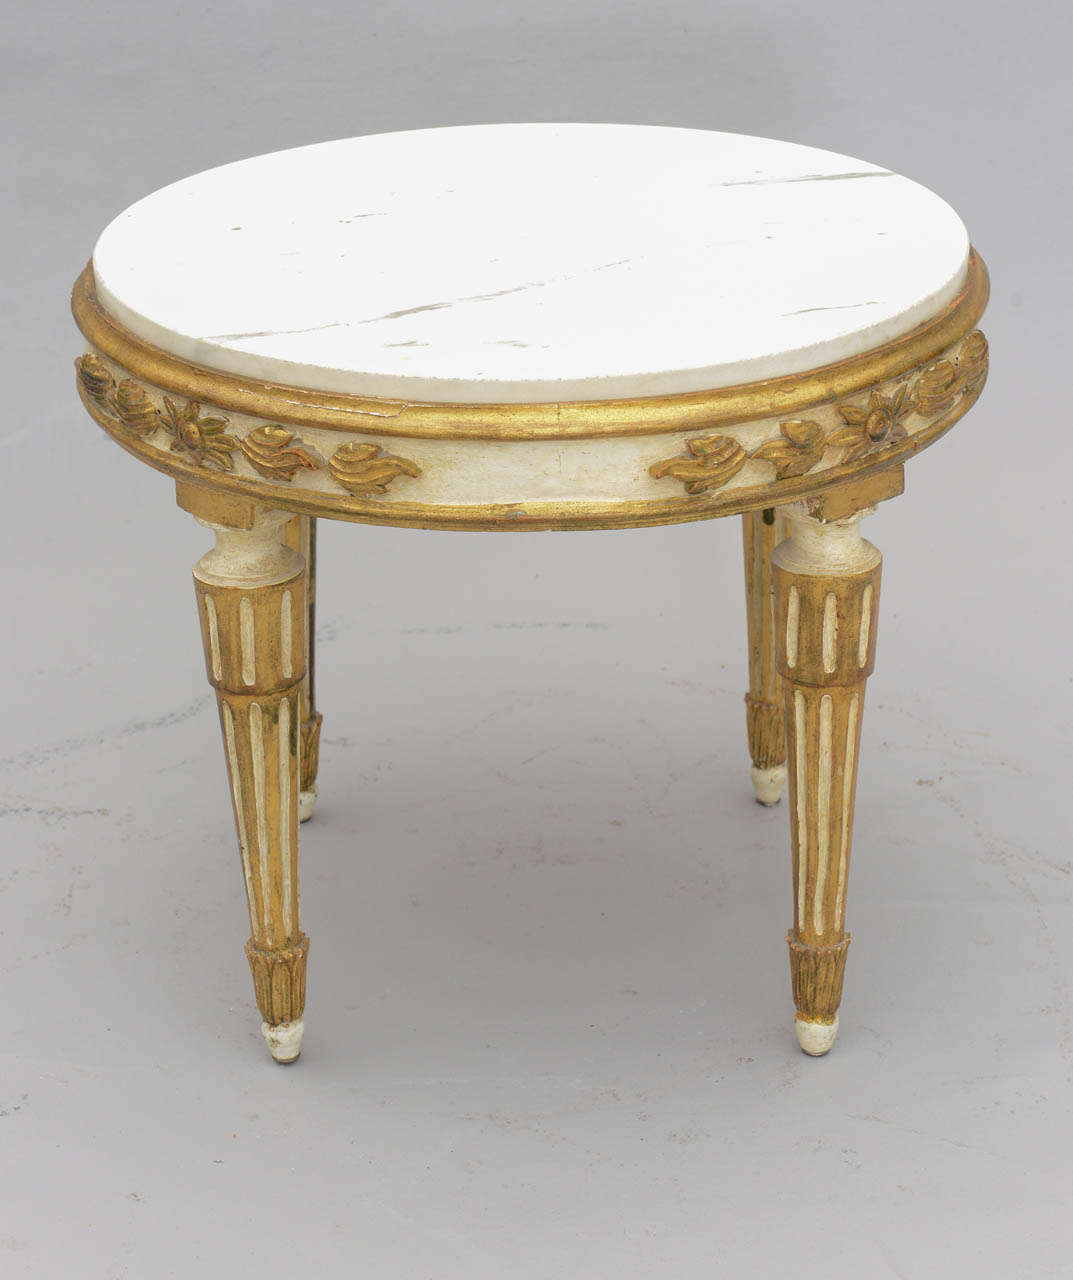 louis xvi giltwood accent table with carrara marble top for white round having veined inset painted and parcel frame pier one wicker chair outdoor umbrella lights antique glass